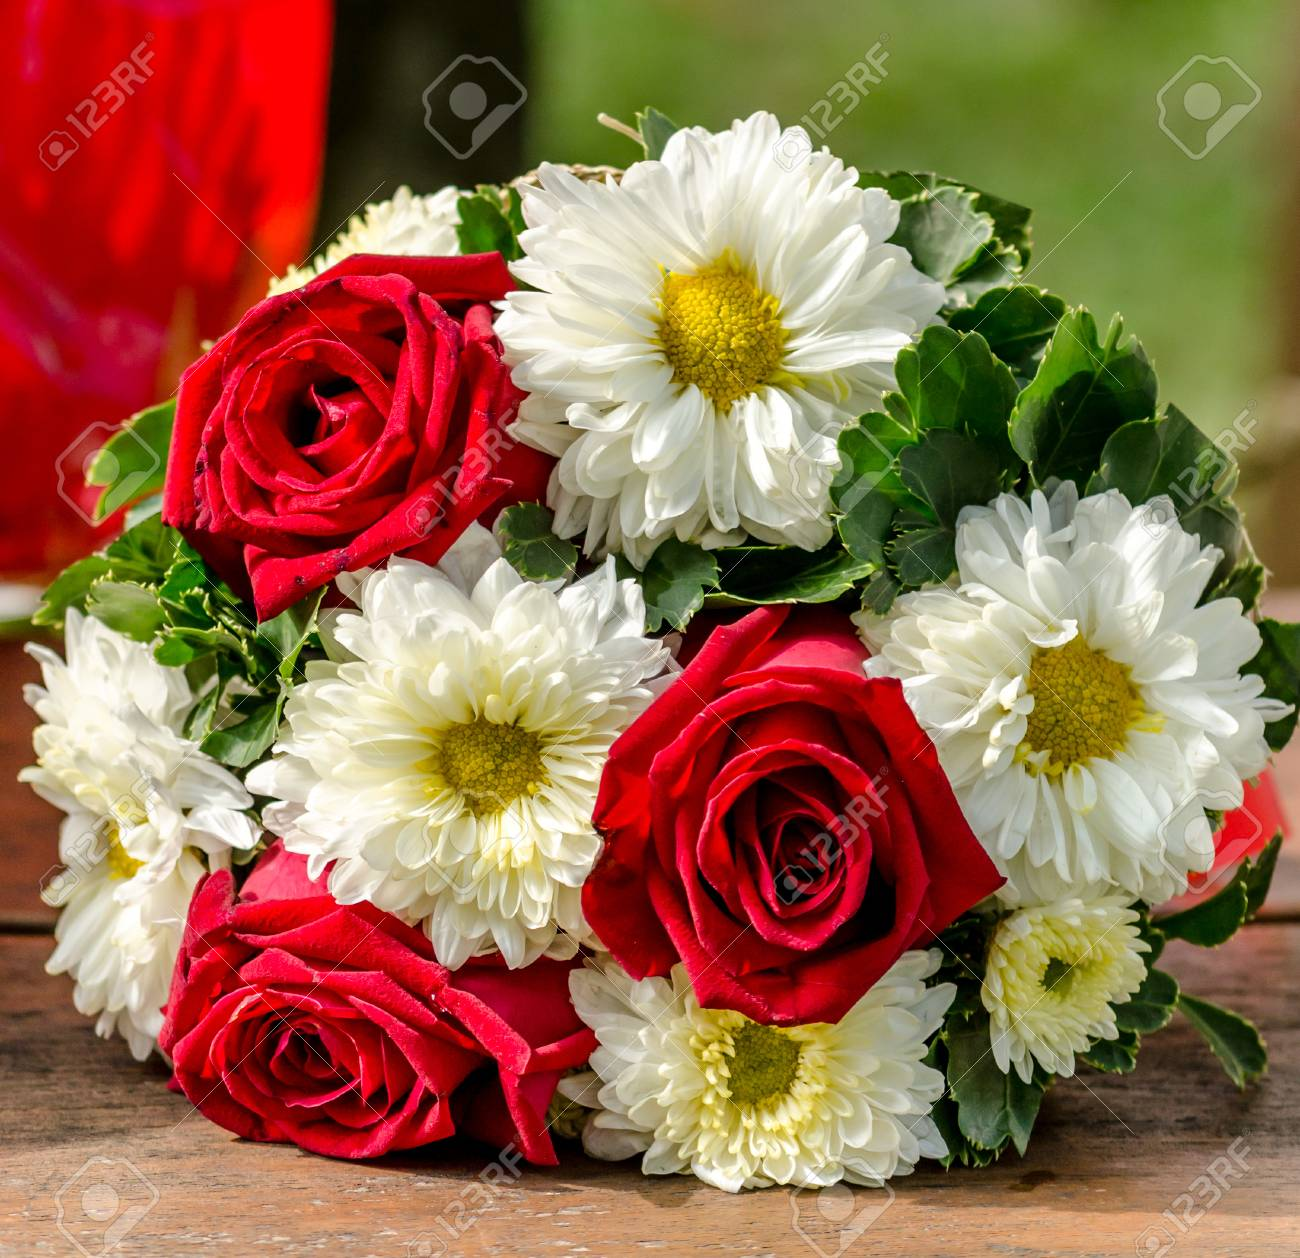 Flower Bouquet In The Anniversary Time In Garden Stock Photo ...